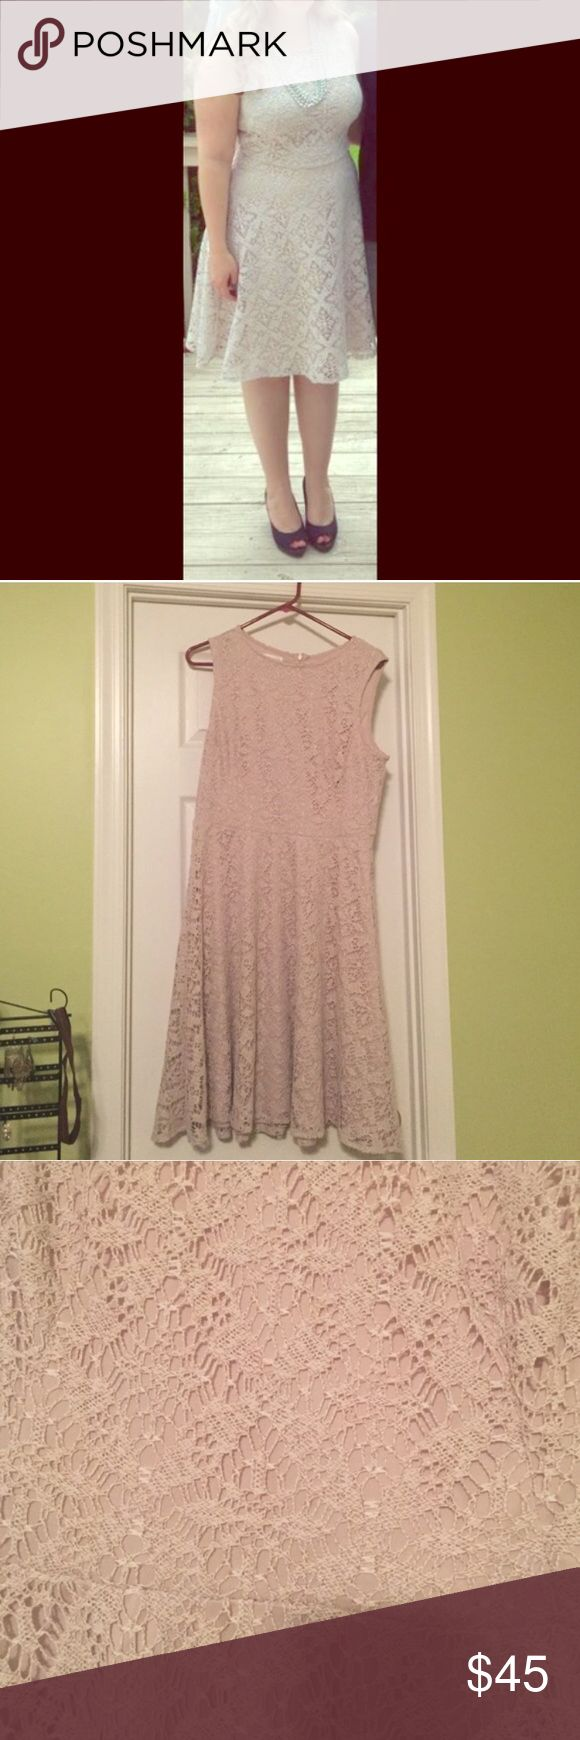 London Times tan lace dress Beautiful dress in perfect condition! Only worn once for my bridal shower. London Times Dresses